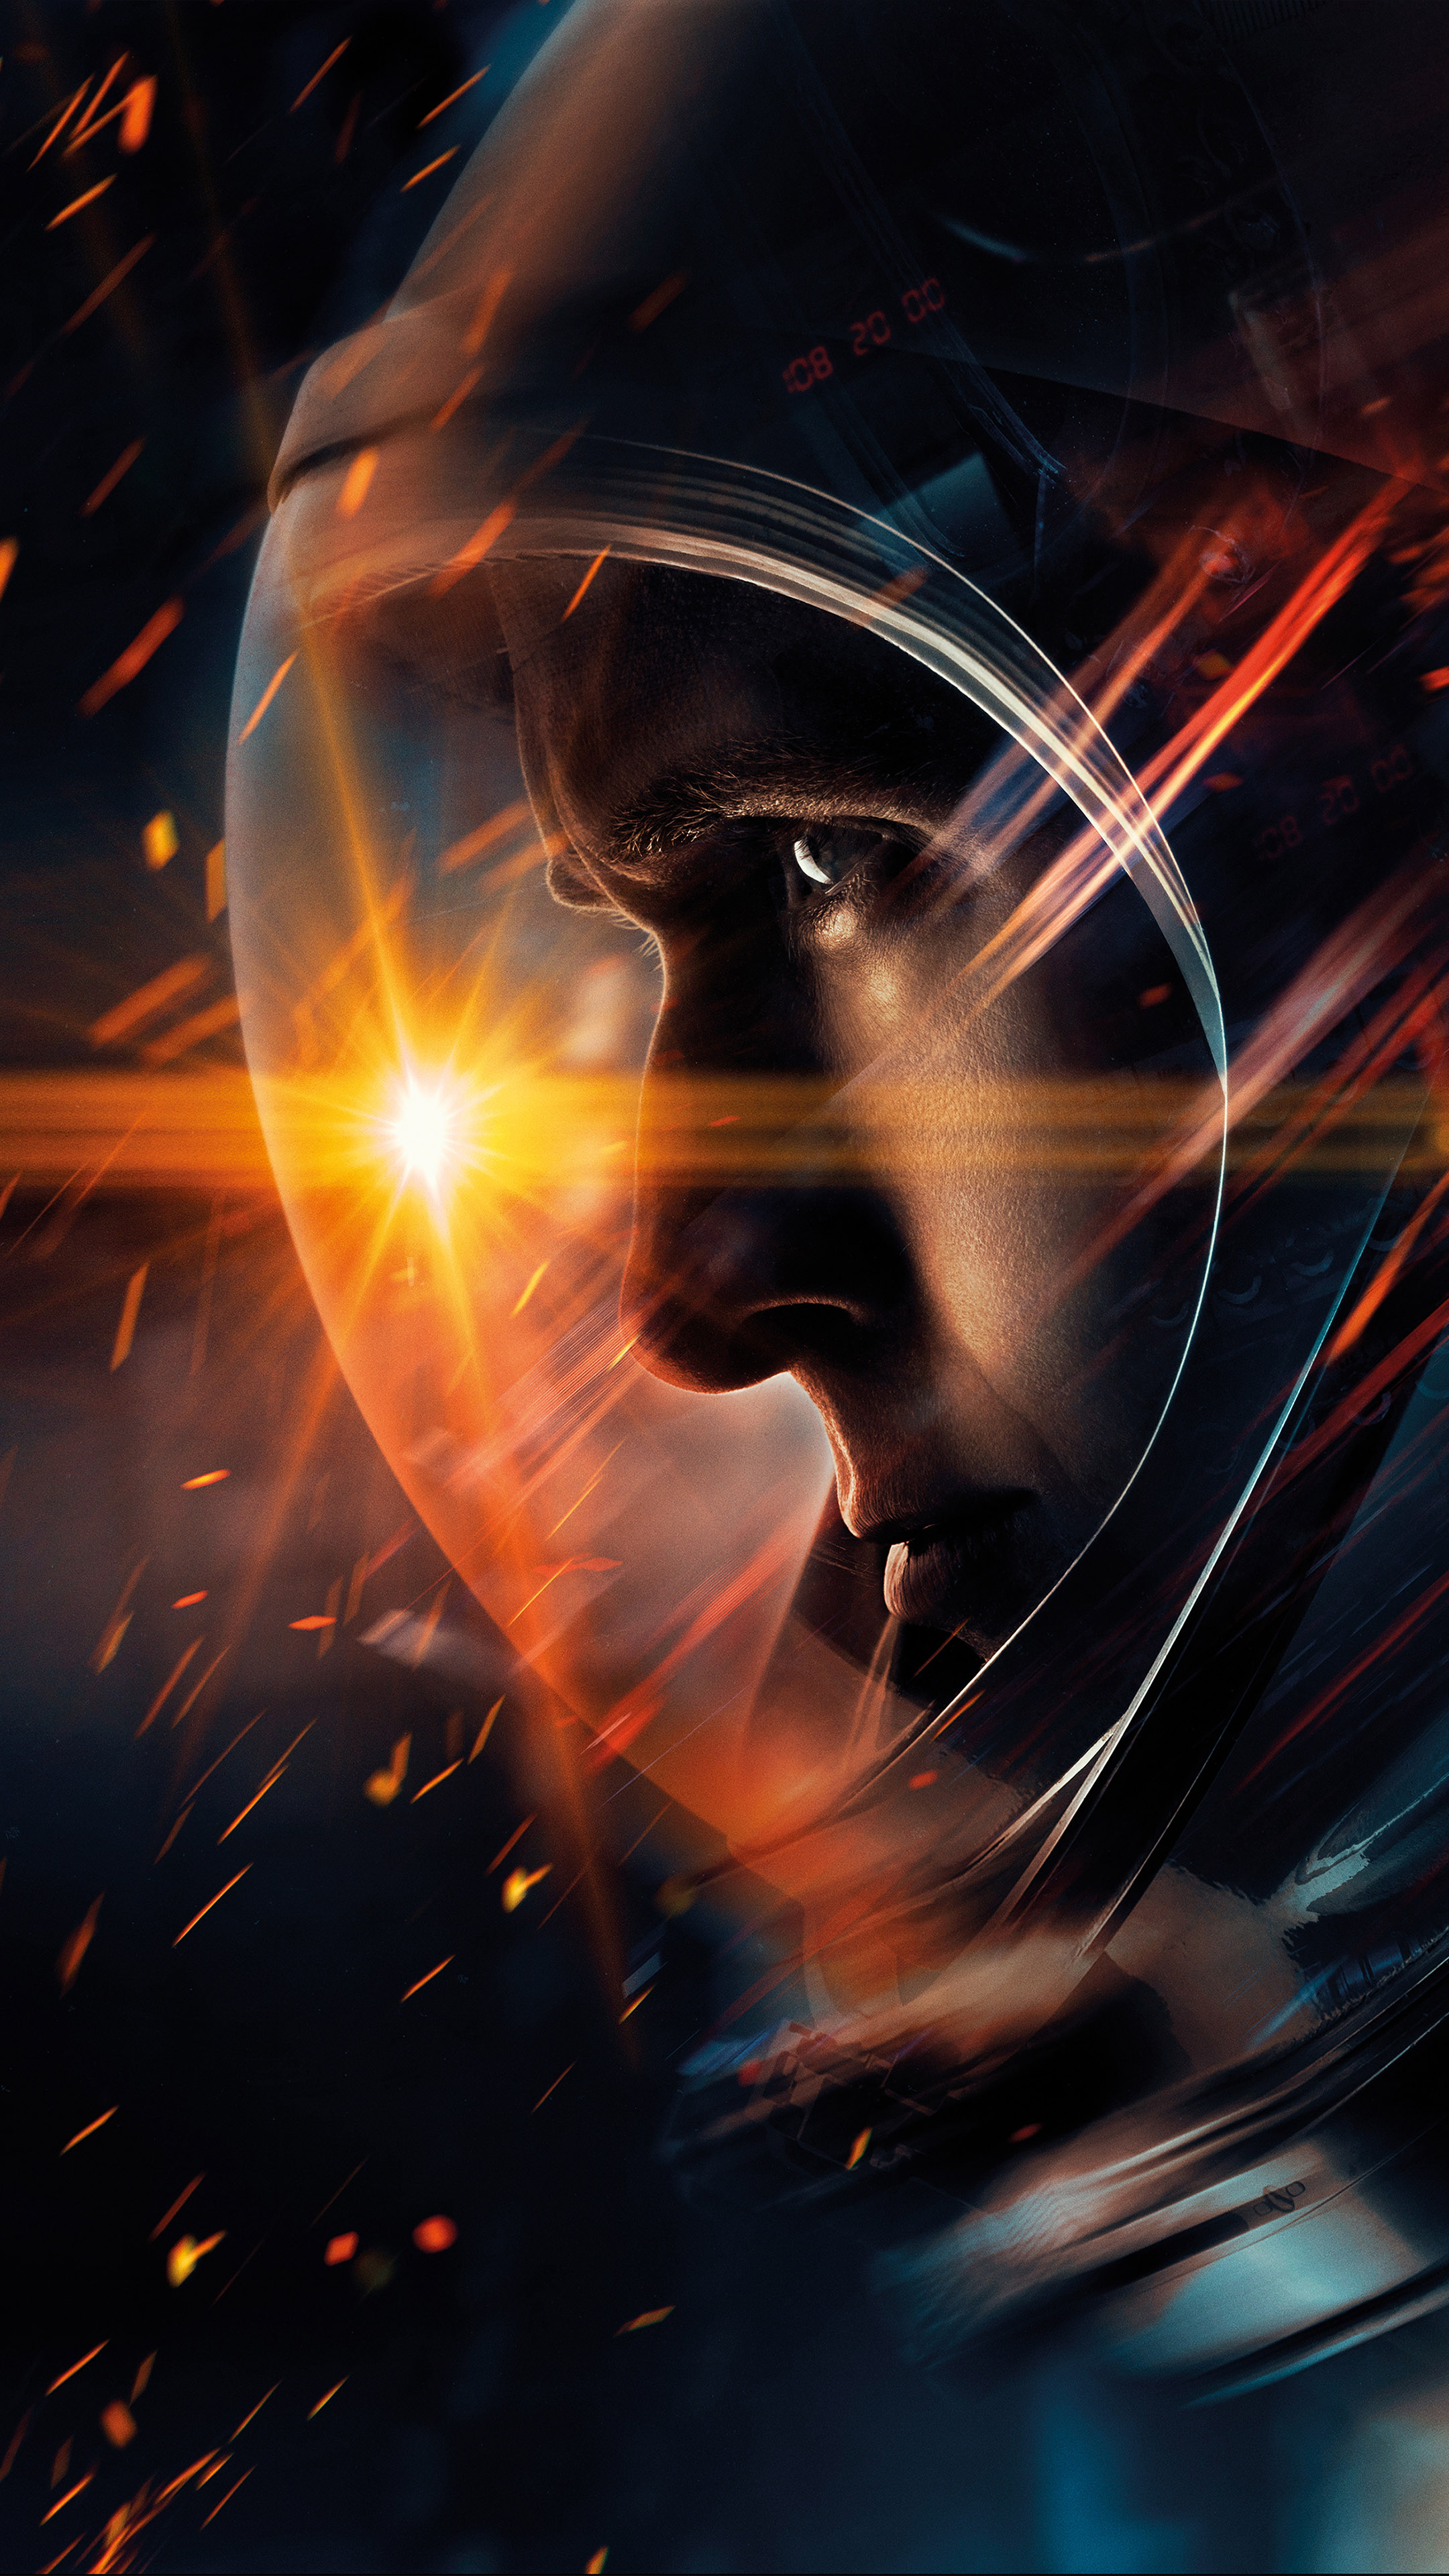 Download Ryan Gosling In First Man Free Pure 4k Ultra Hd Mobile